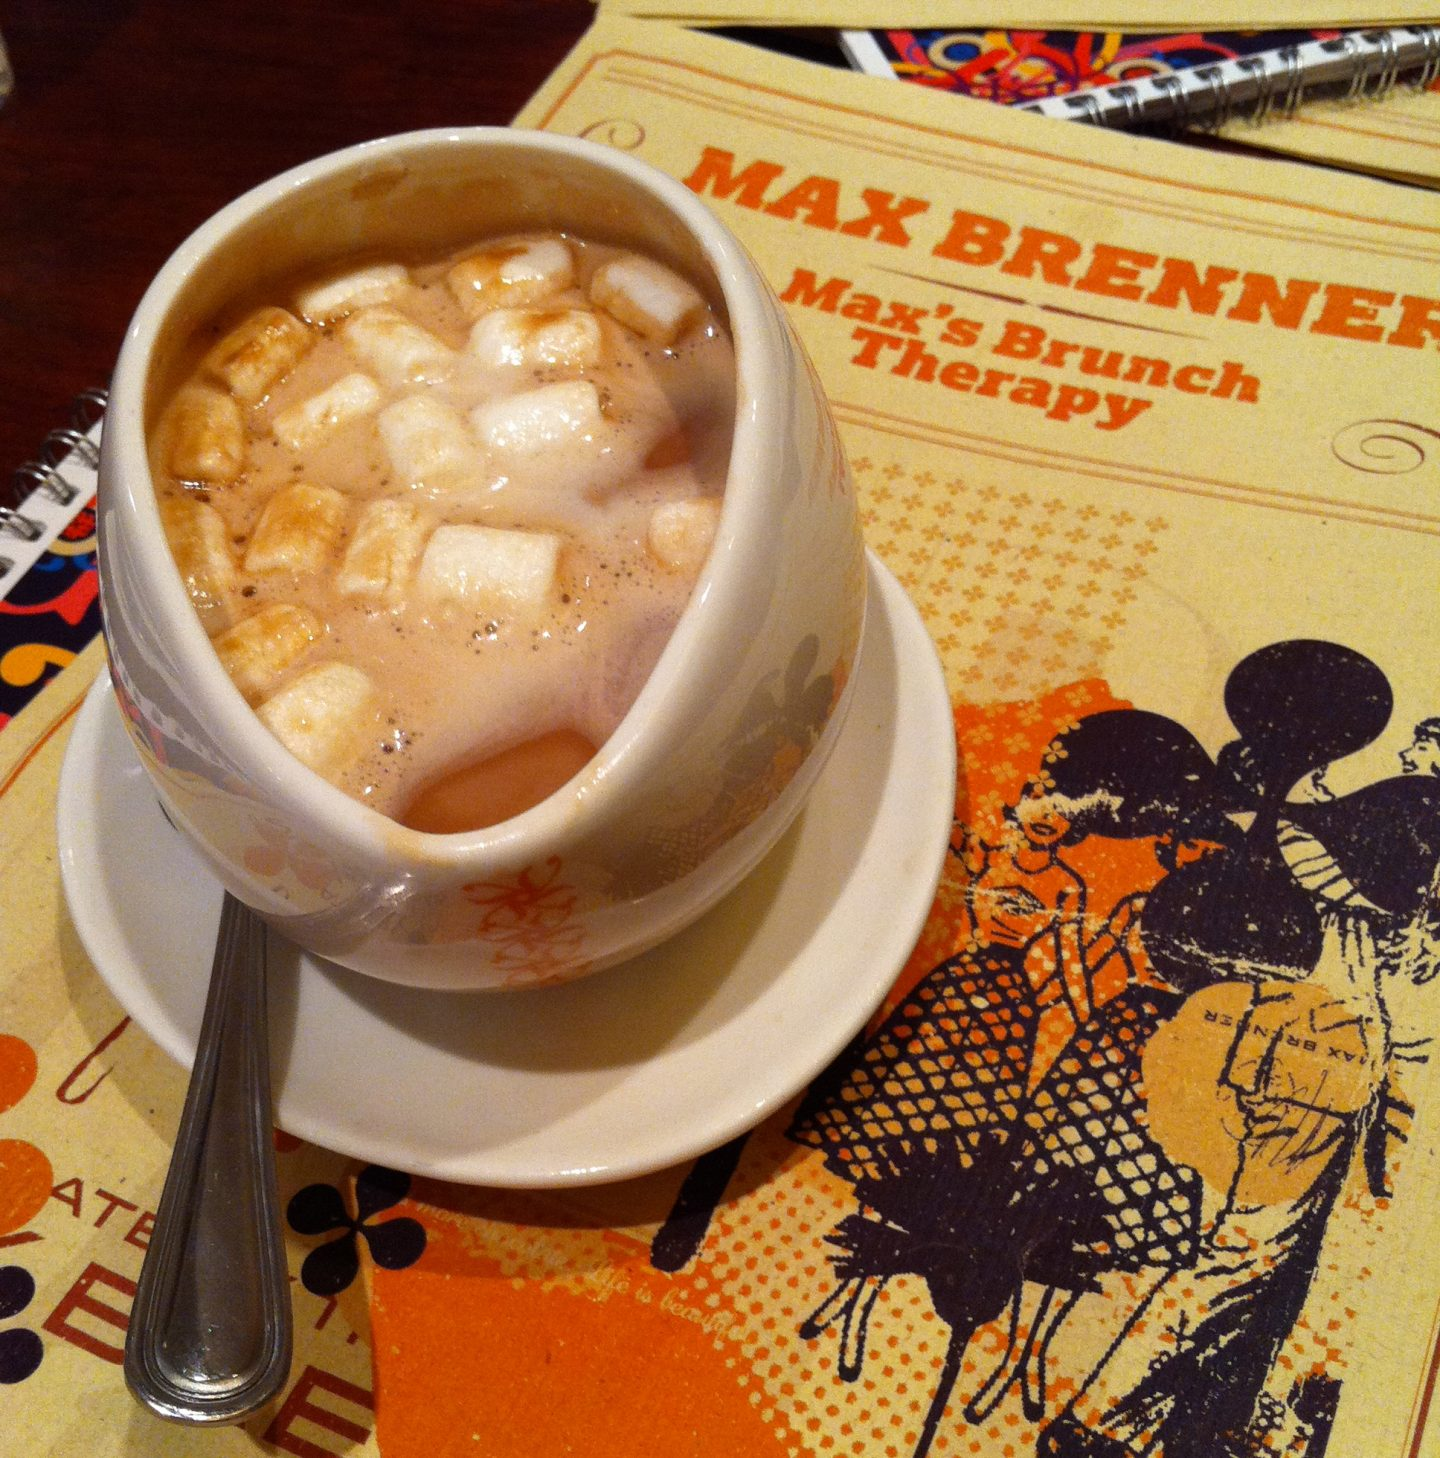 Max Brenner's Hot Chocolate with Marshmallows